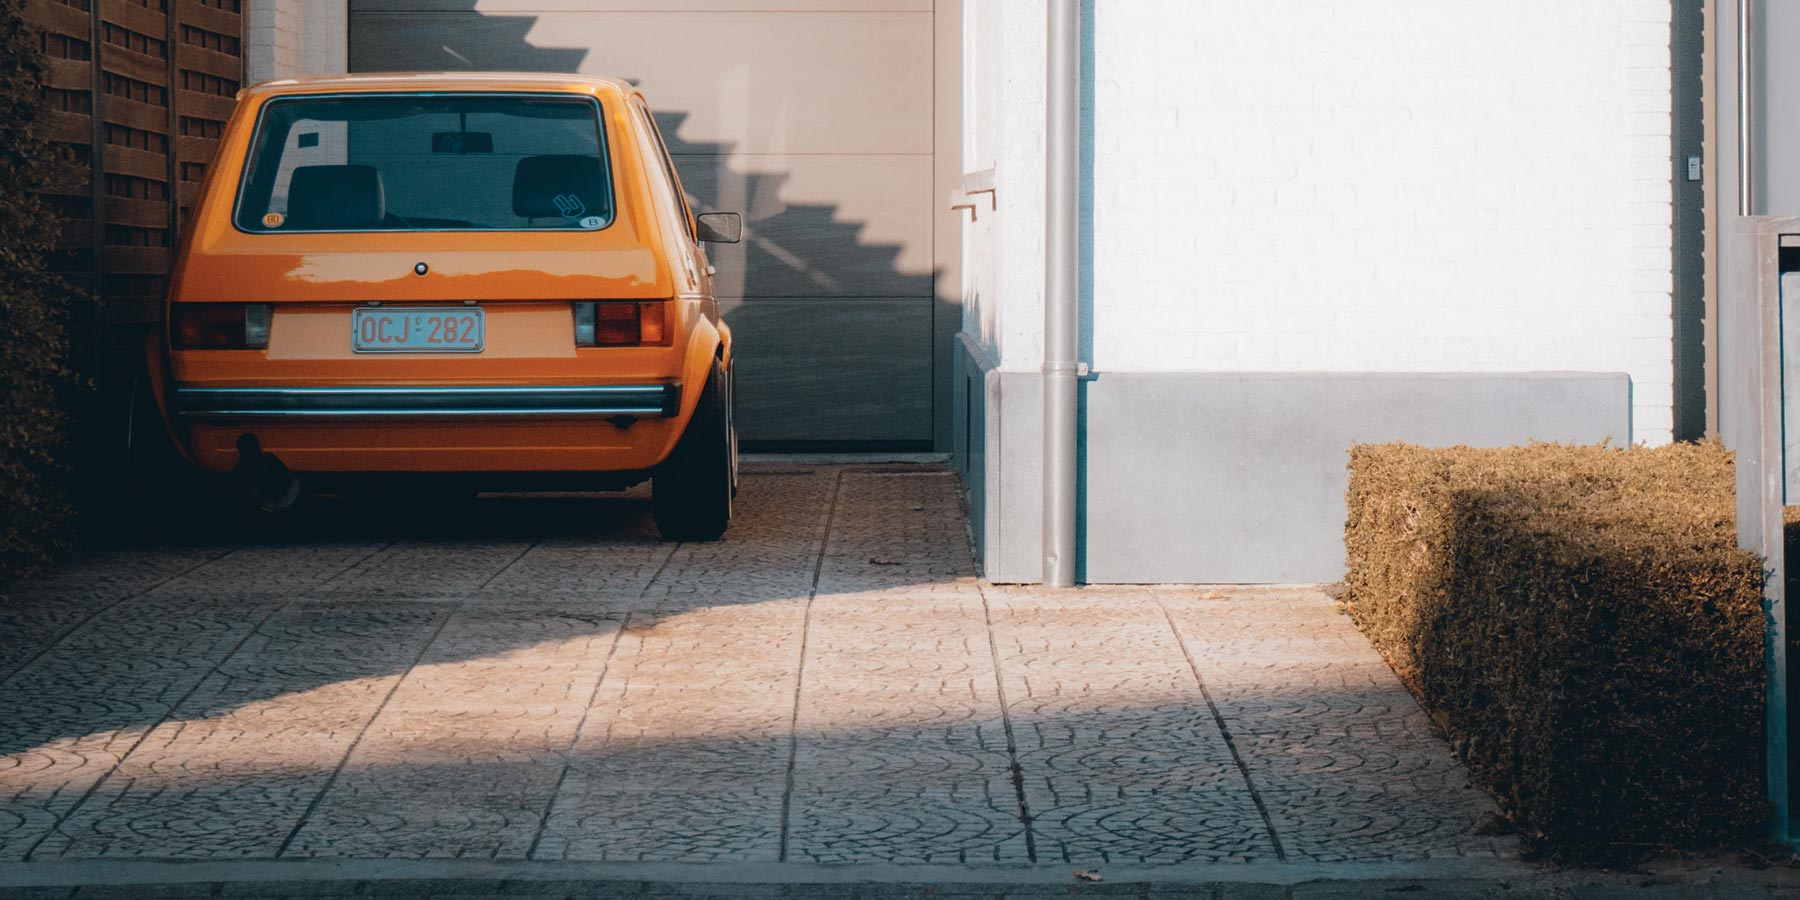 Clean home driveaway during sunset featuring a parked vintage yellow car.